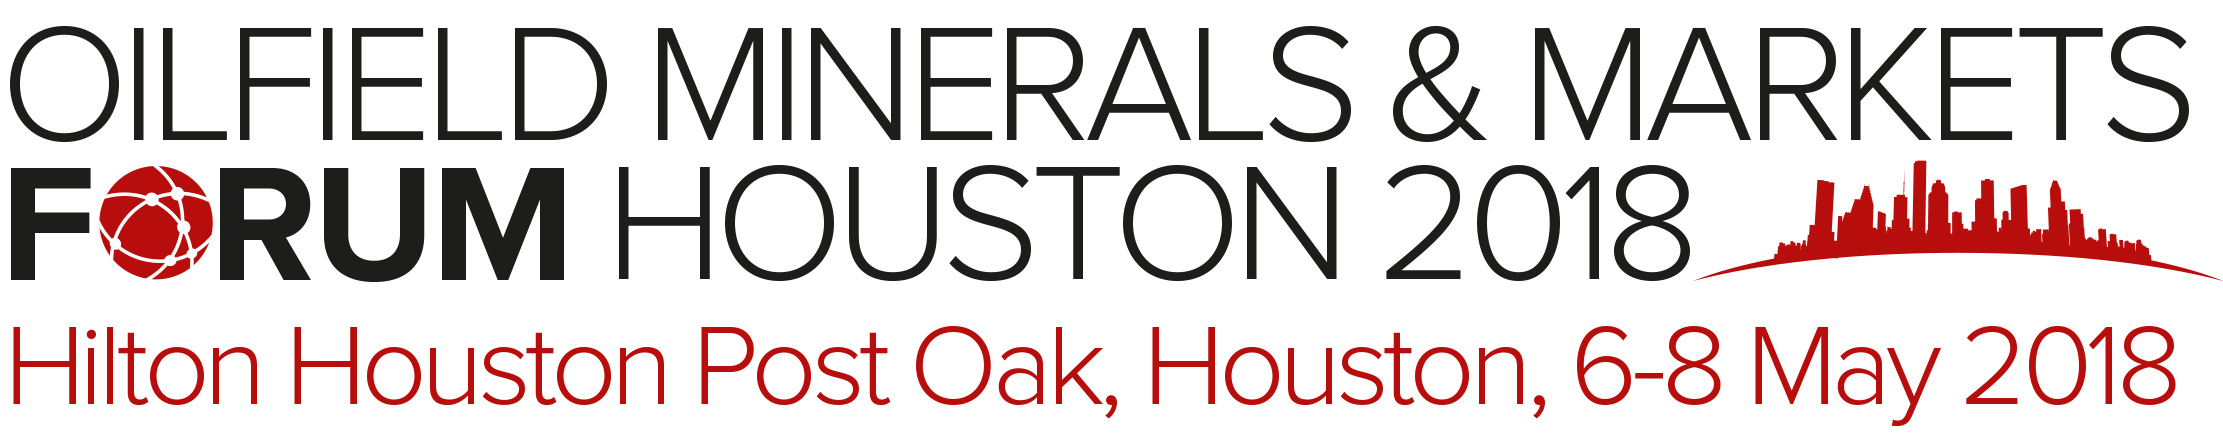 OFM Houston2018 logo